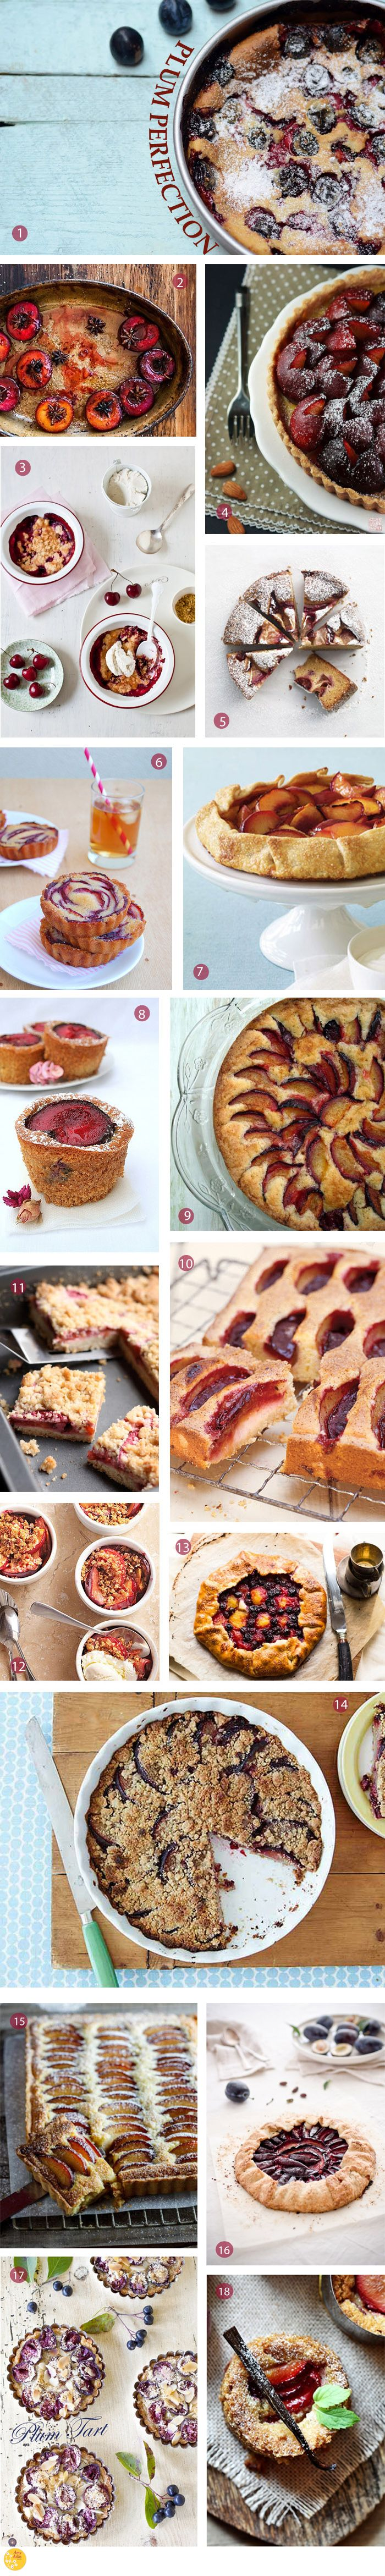 Plum Perfection. 18 Plum Desserts to Get Your Juices Flowing!